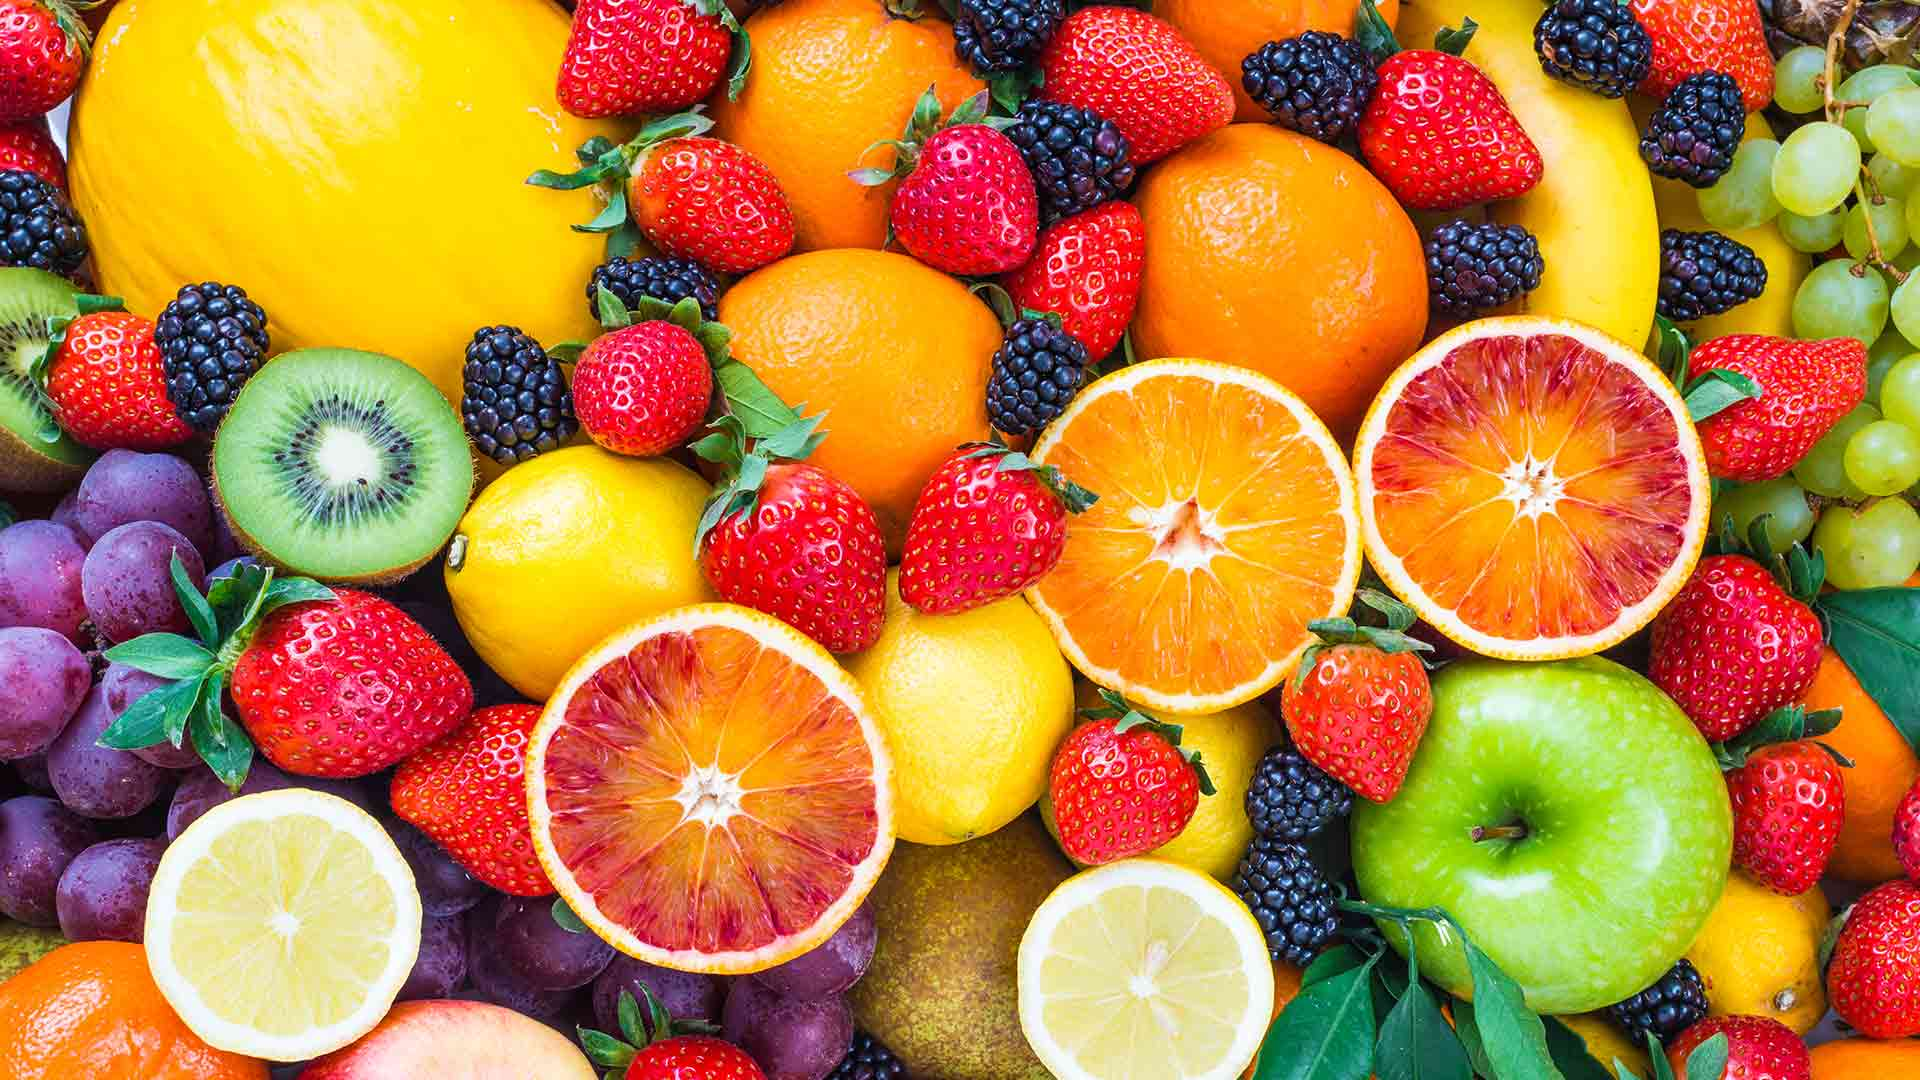 Online Shopping Vegetables And Fruits